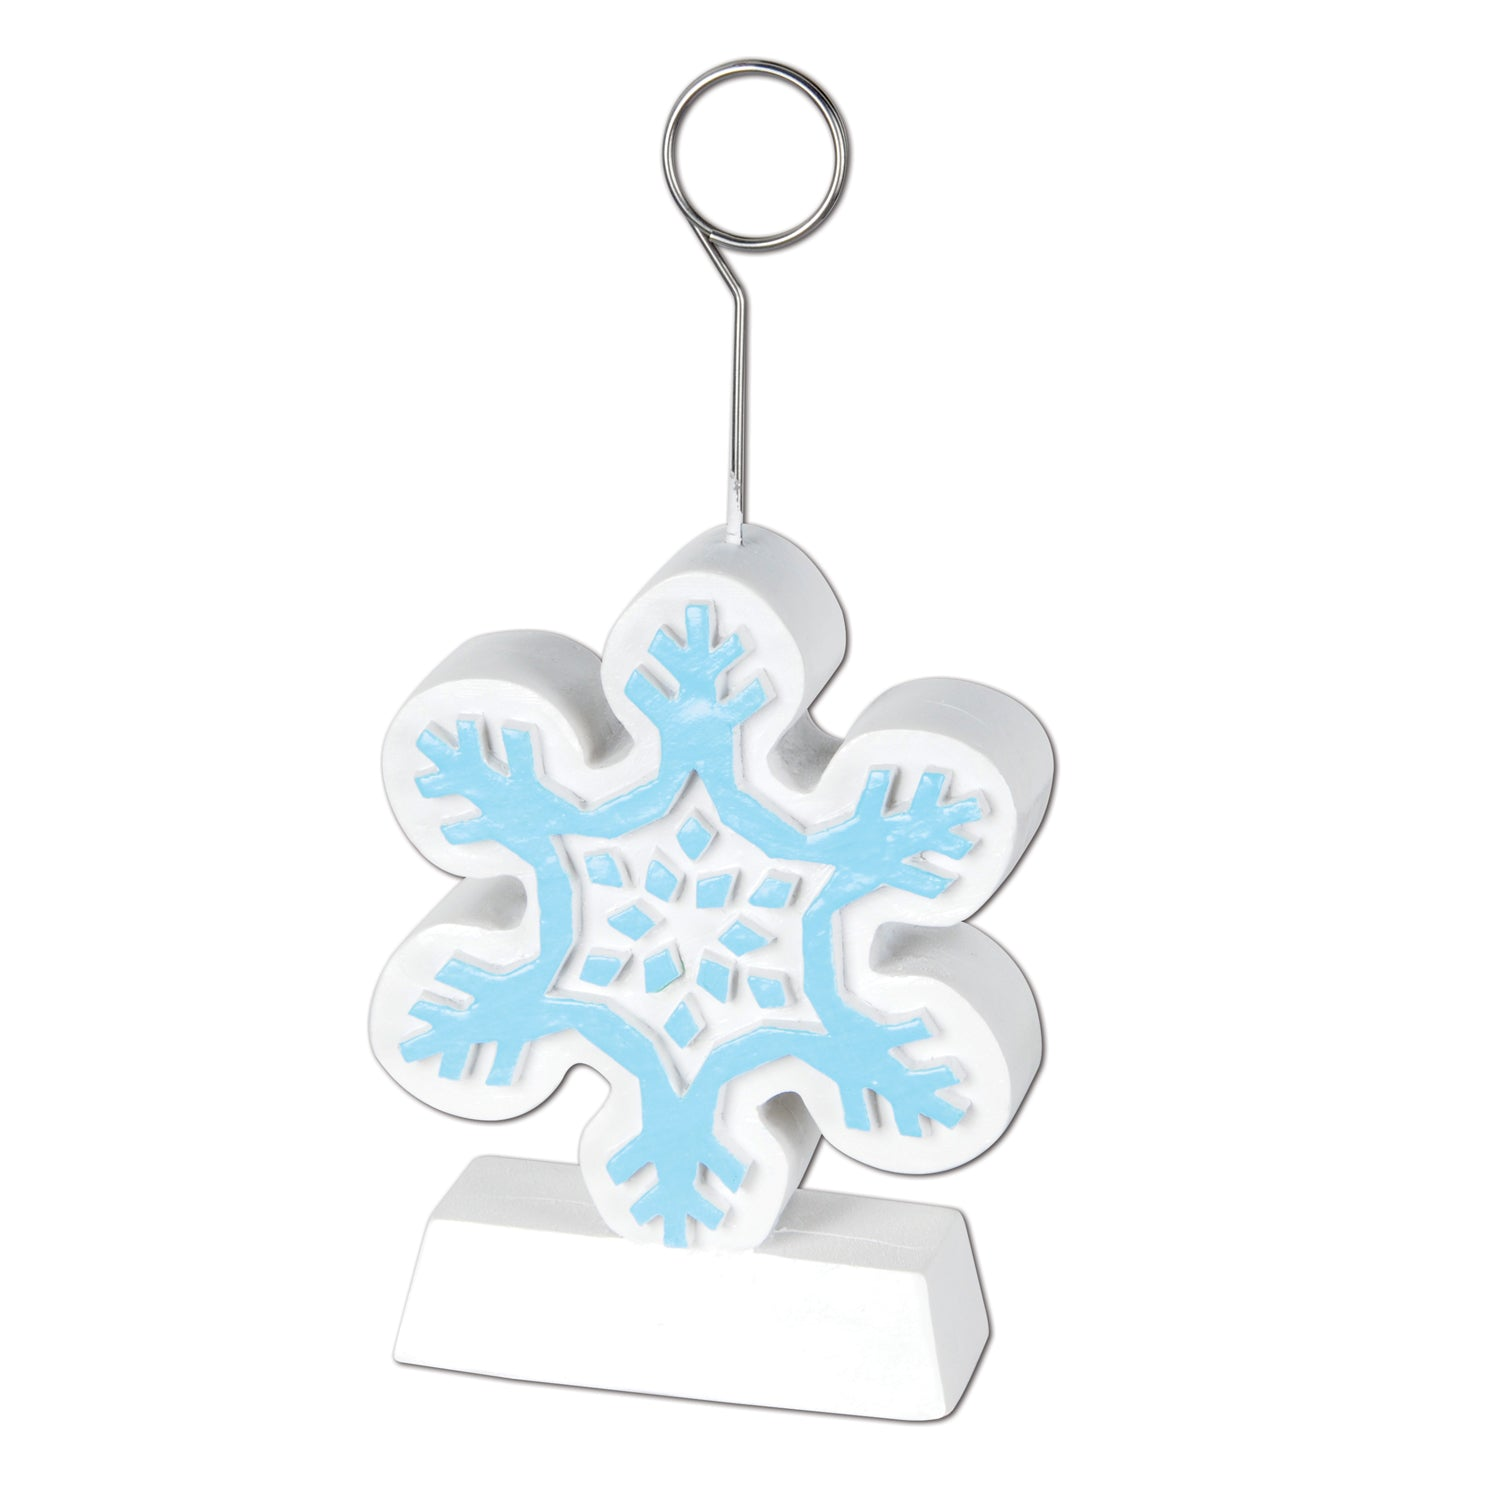 Snowflake Photo/Balloon Holder by Beistle - Winter and Christmas Theme Decorations